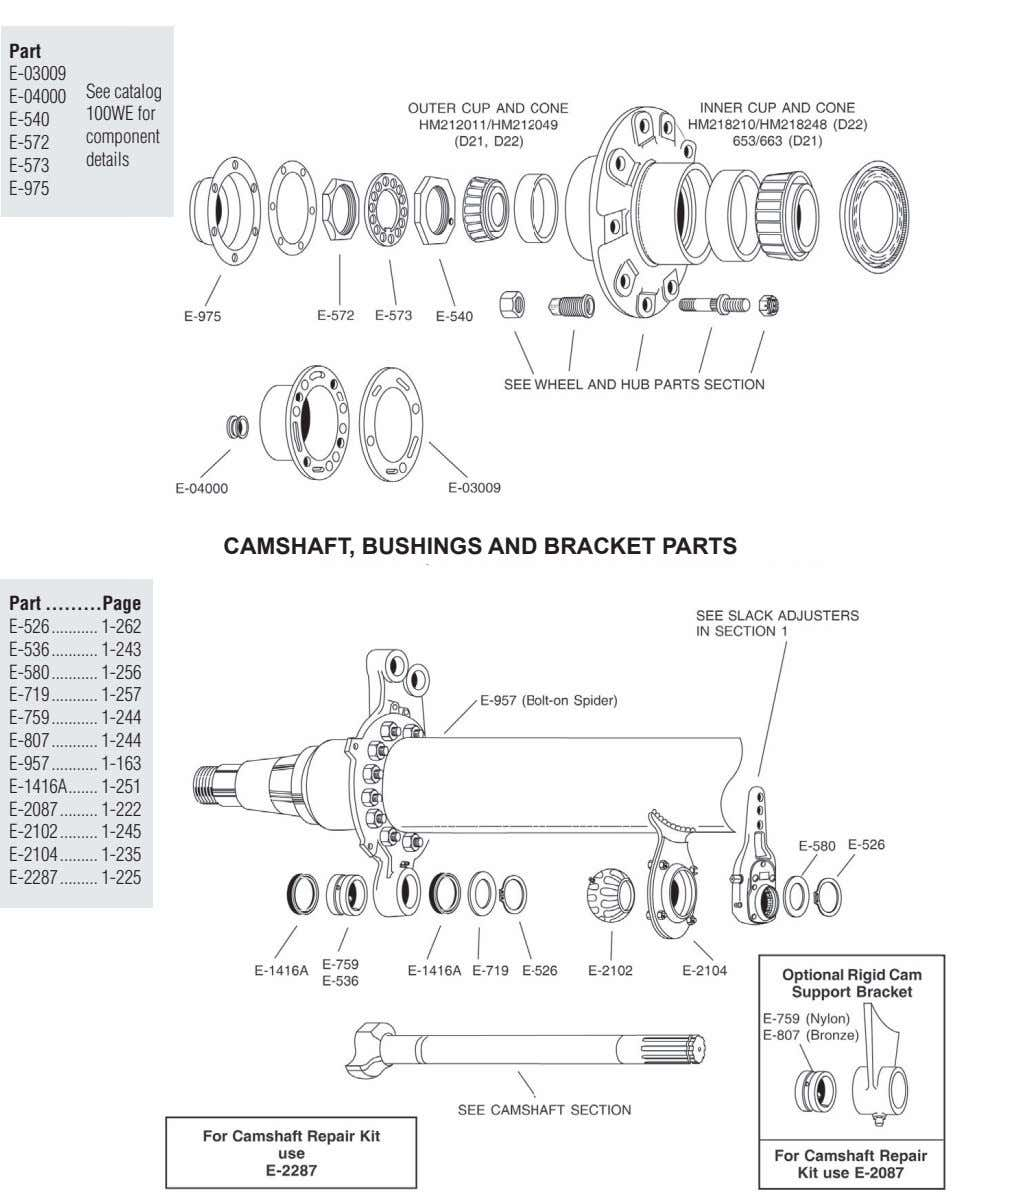 Part E-03009 See catalog E-04000 100WE for E-540 component E-572 details E-573 E-975 CAMSHAFT, BUSHINGS